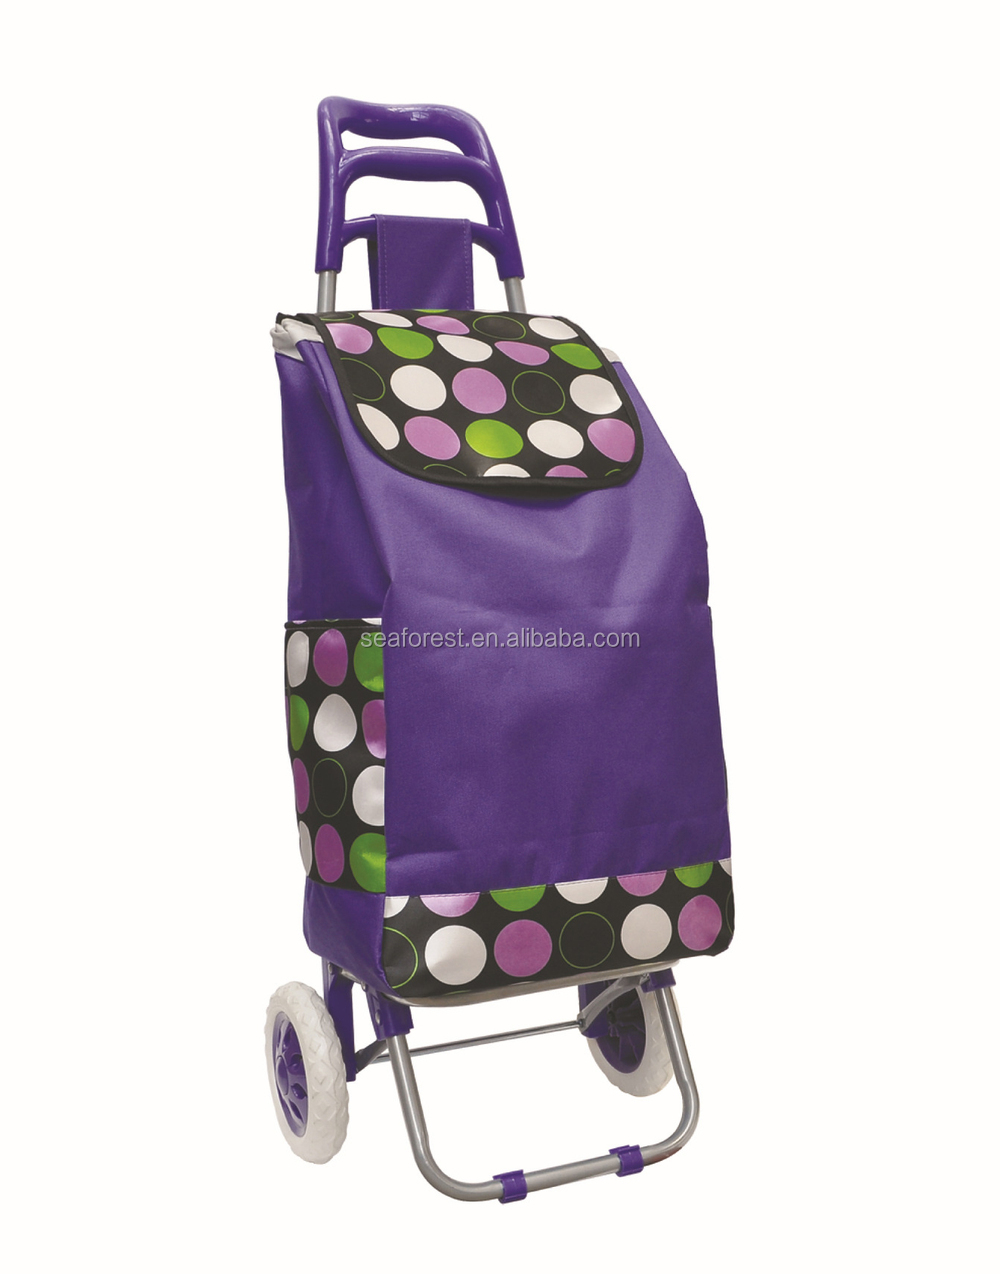 ab311ba07a55 Outdoor Portable Grocery Reusable Folding Shopping Cart Trolley Bag With  Wheels - Buy Reusable Shopping Cart Bags,Four Wheel Shopping Trolley ...